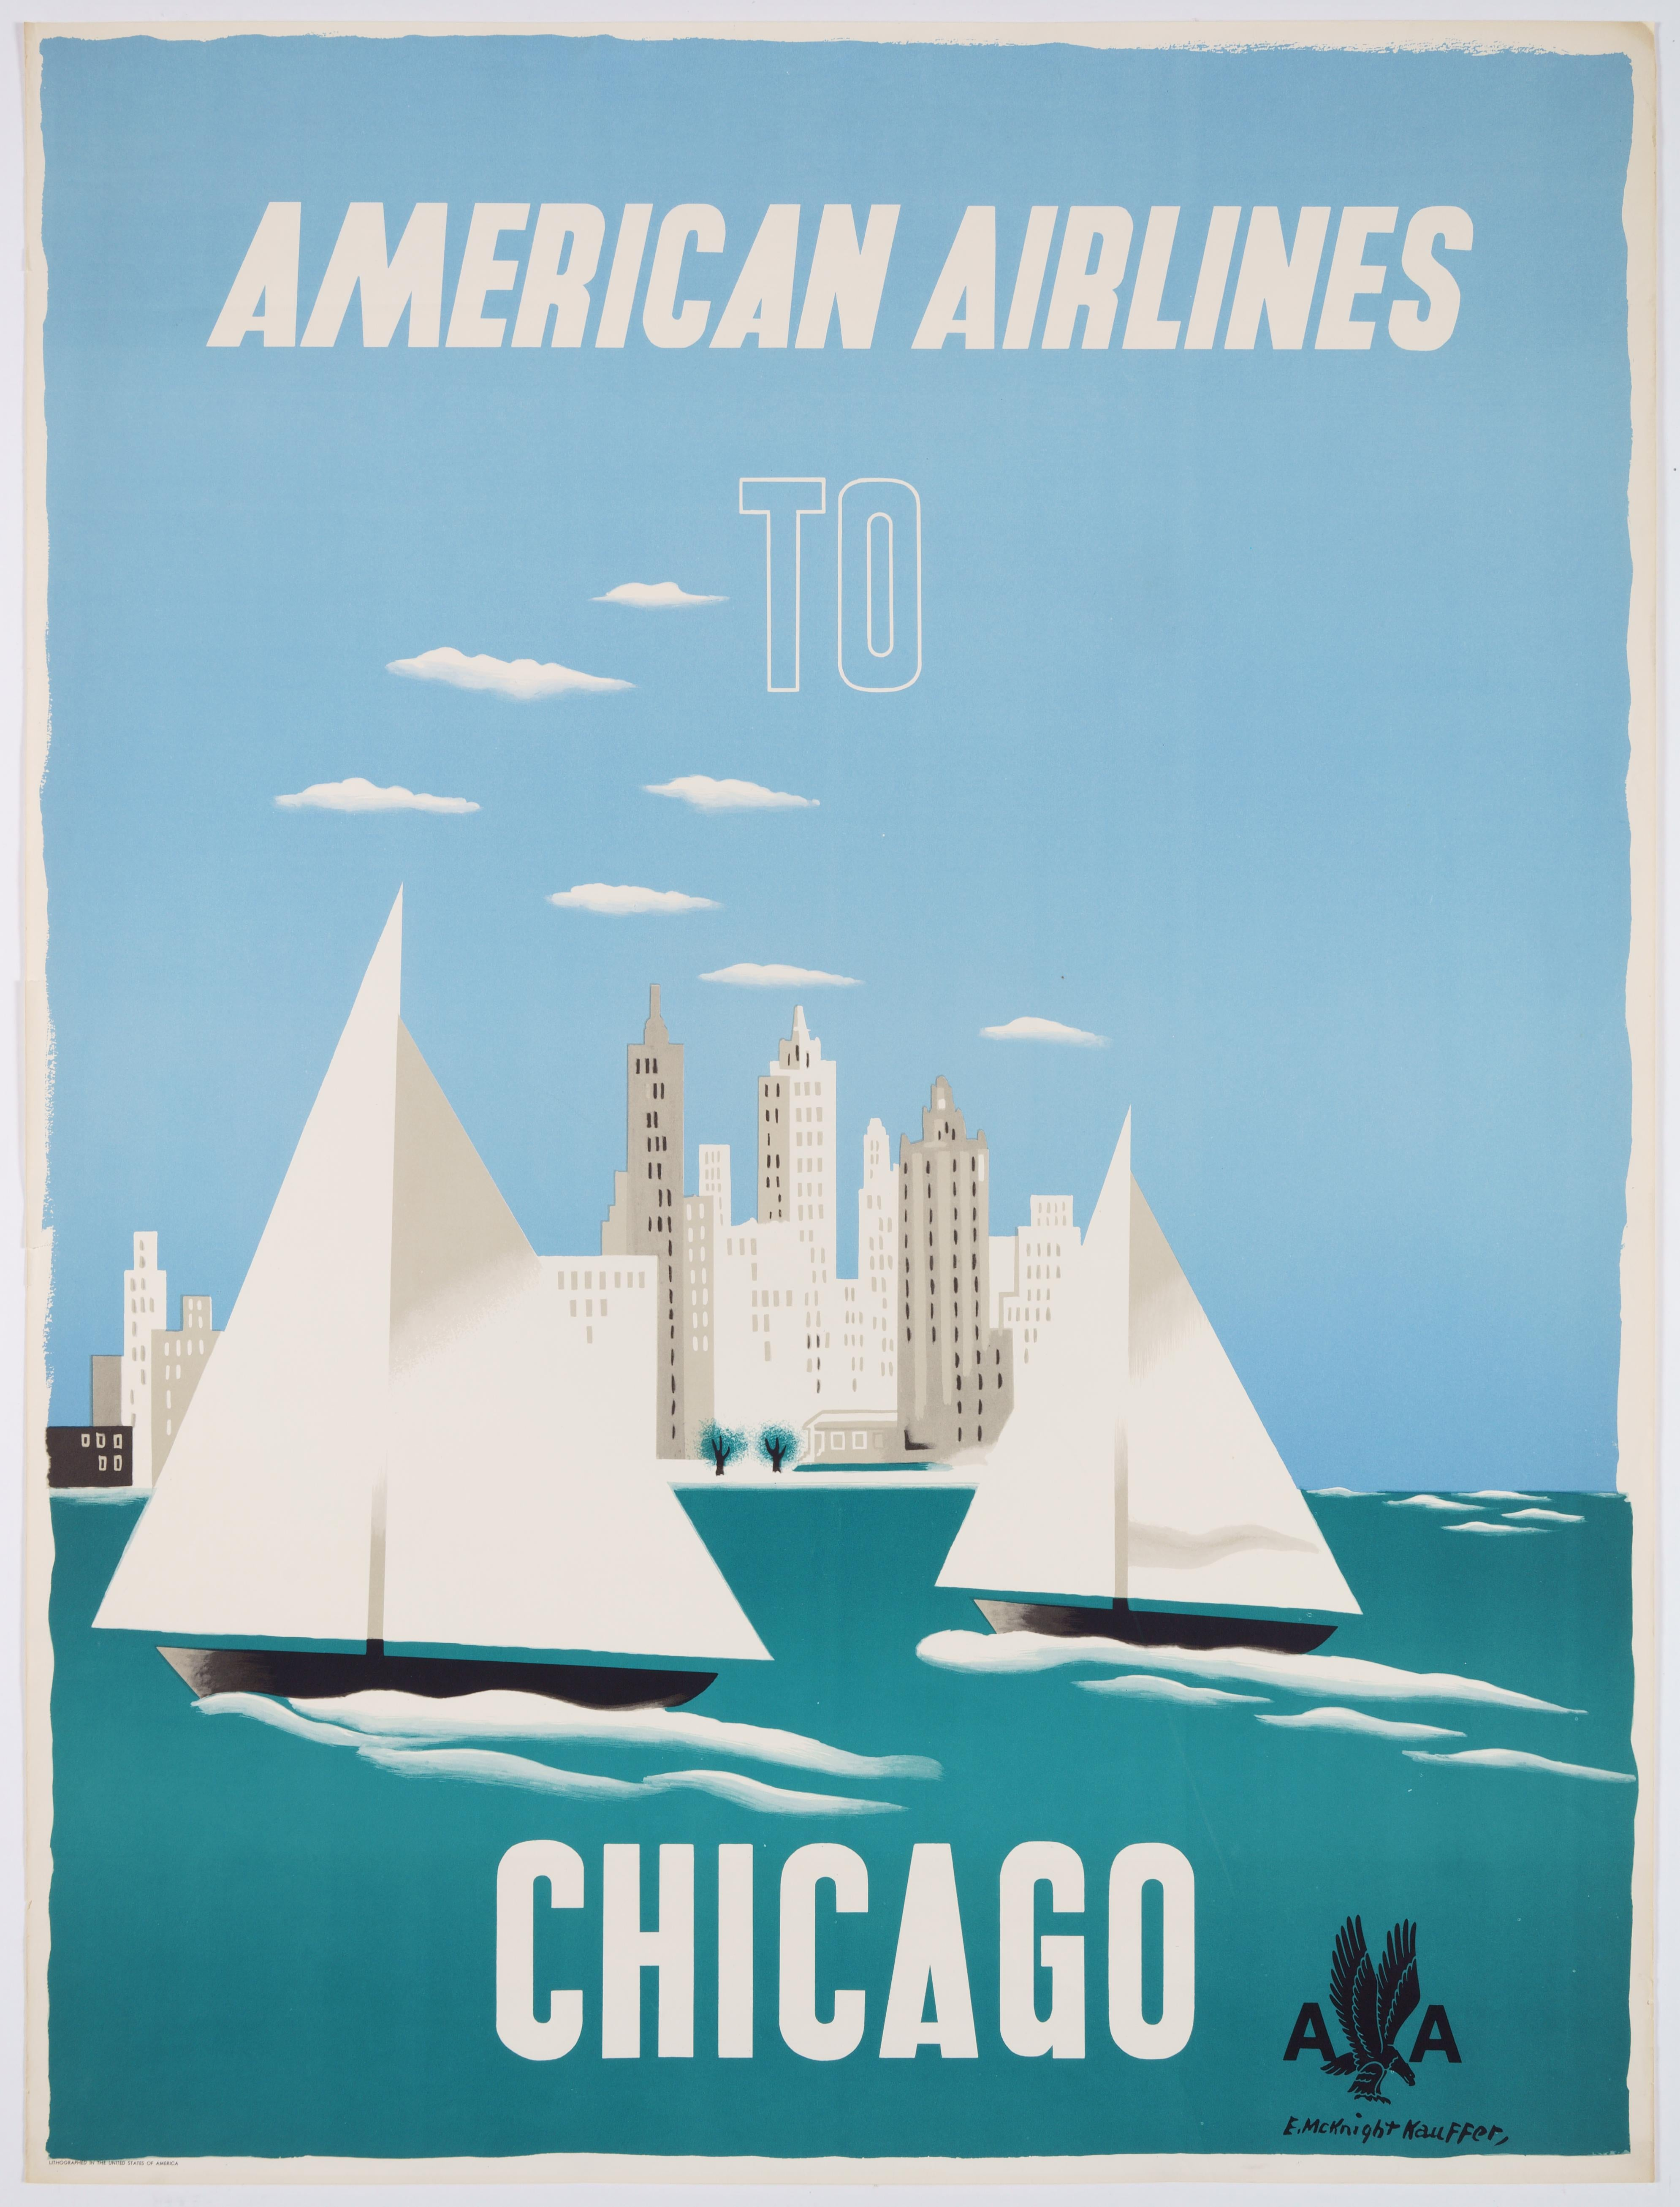 Original Vintage Travel Poster – American Airlines to Chicago